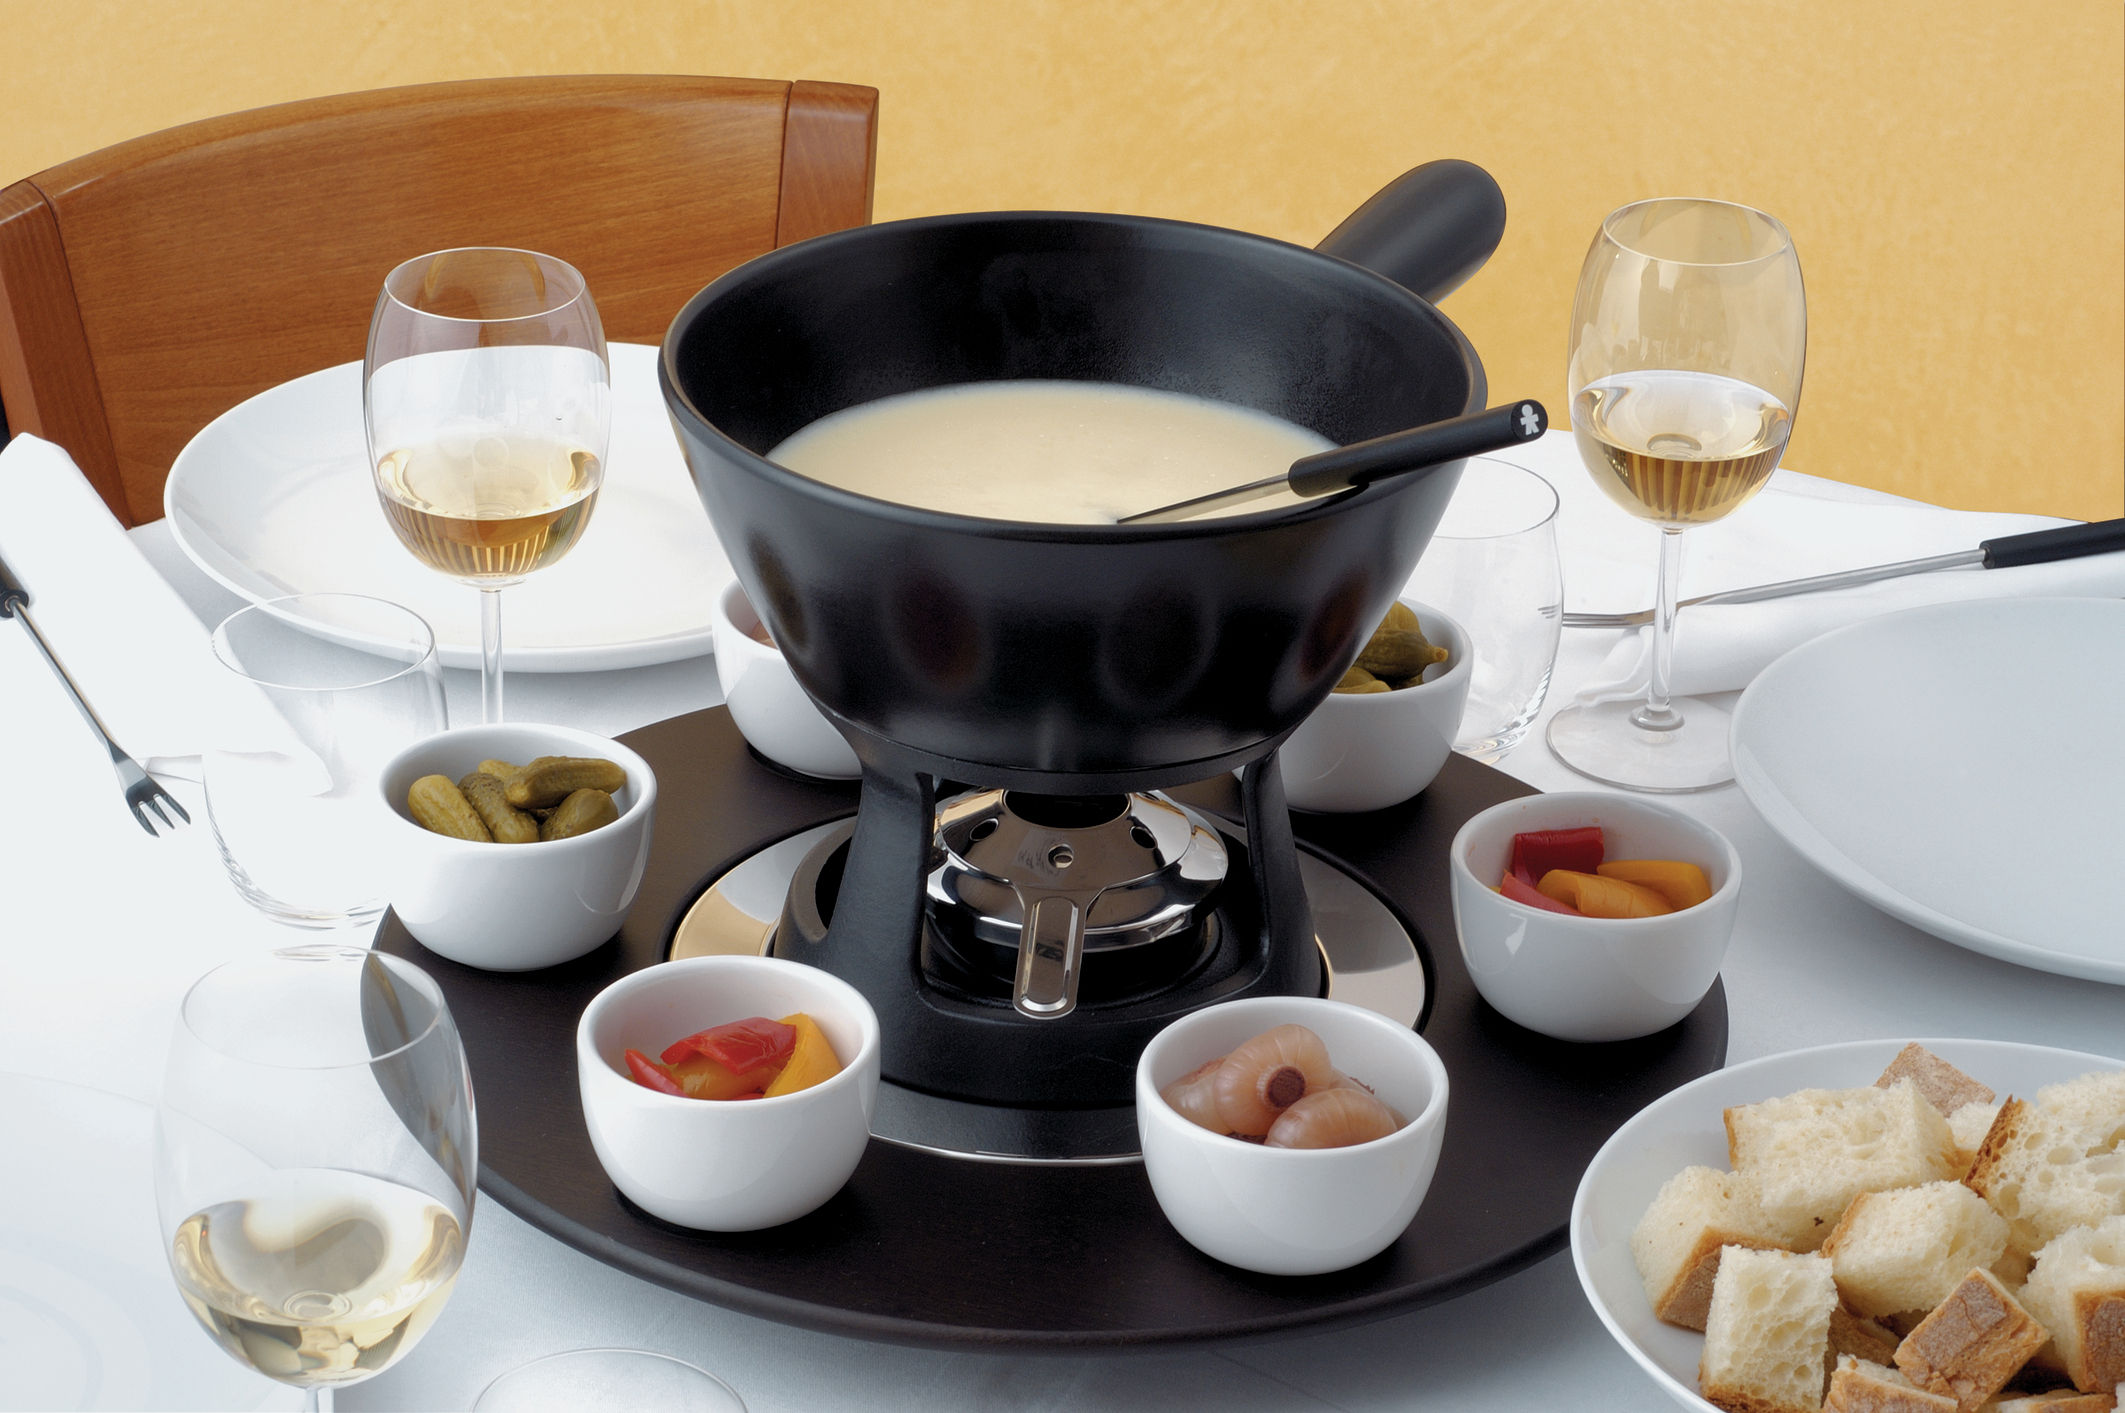 mami fondu service fondue set by alessi. Black Bedroom Furniture Sets. Home Design Ideas